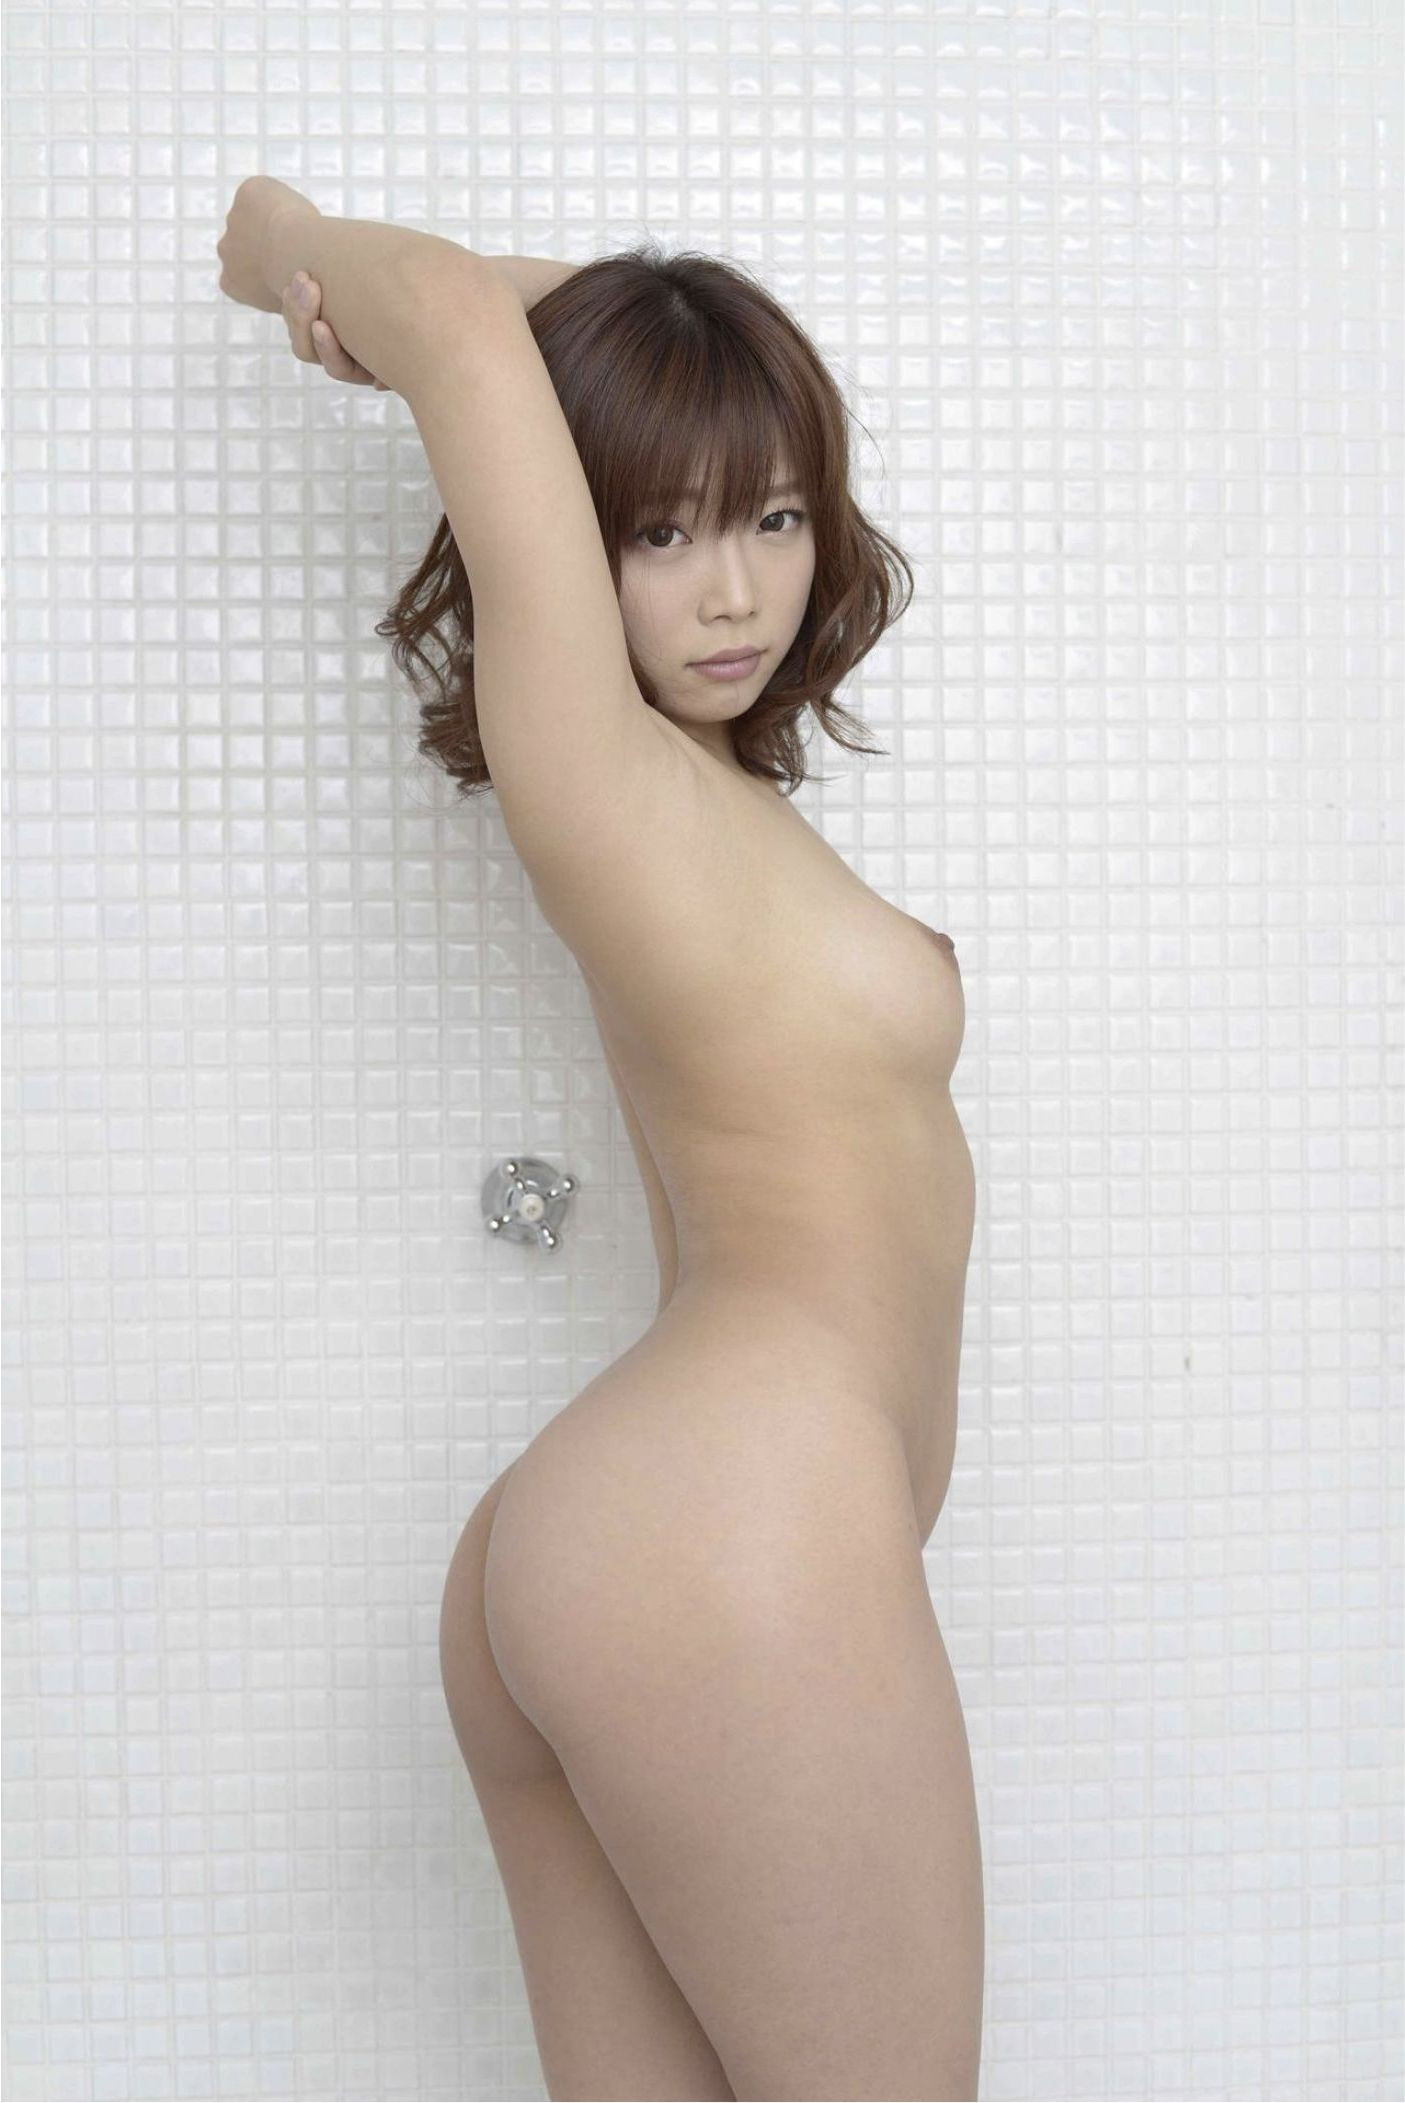 SOFT ON DEMAND GRAVURE COLLECTION 紗倉まな02 photo 056